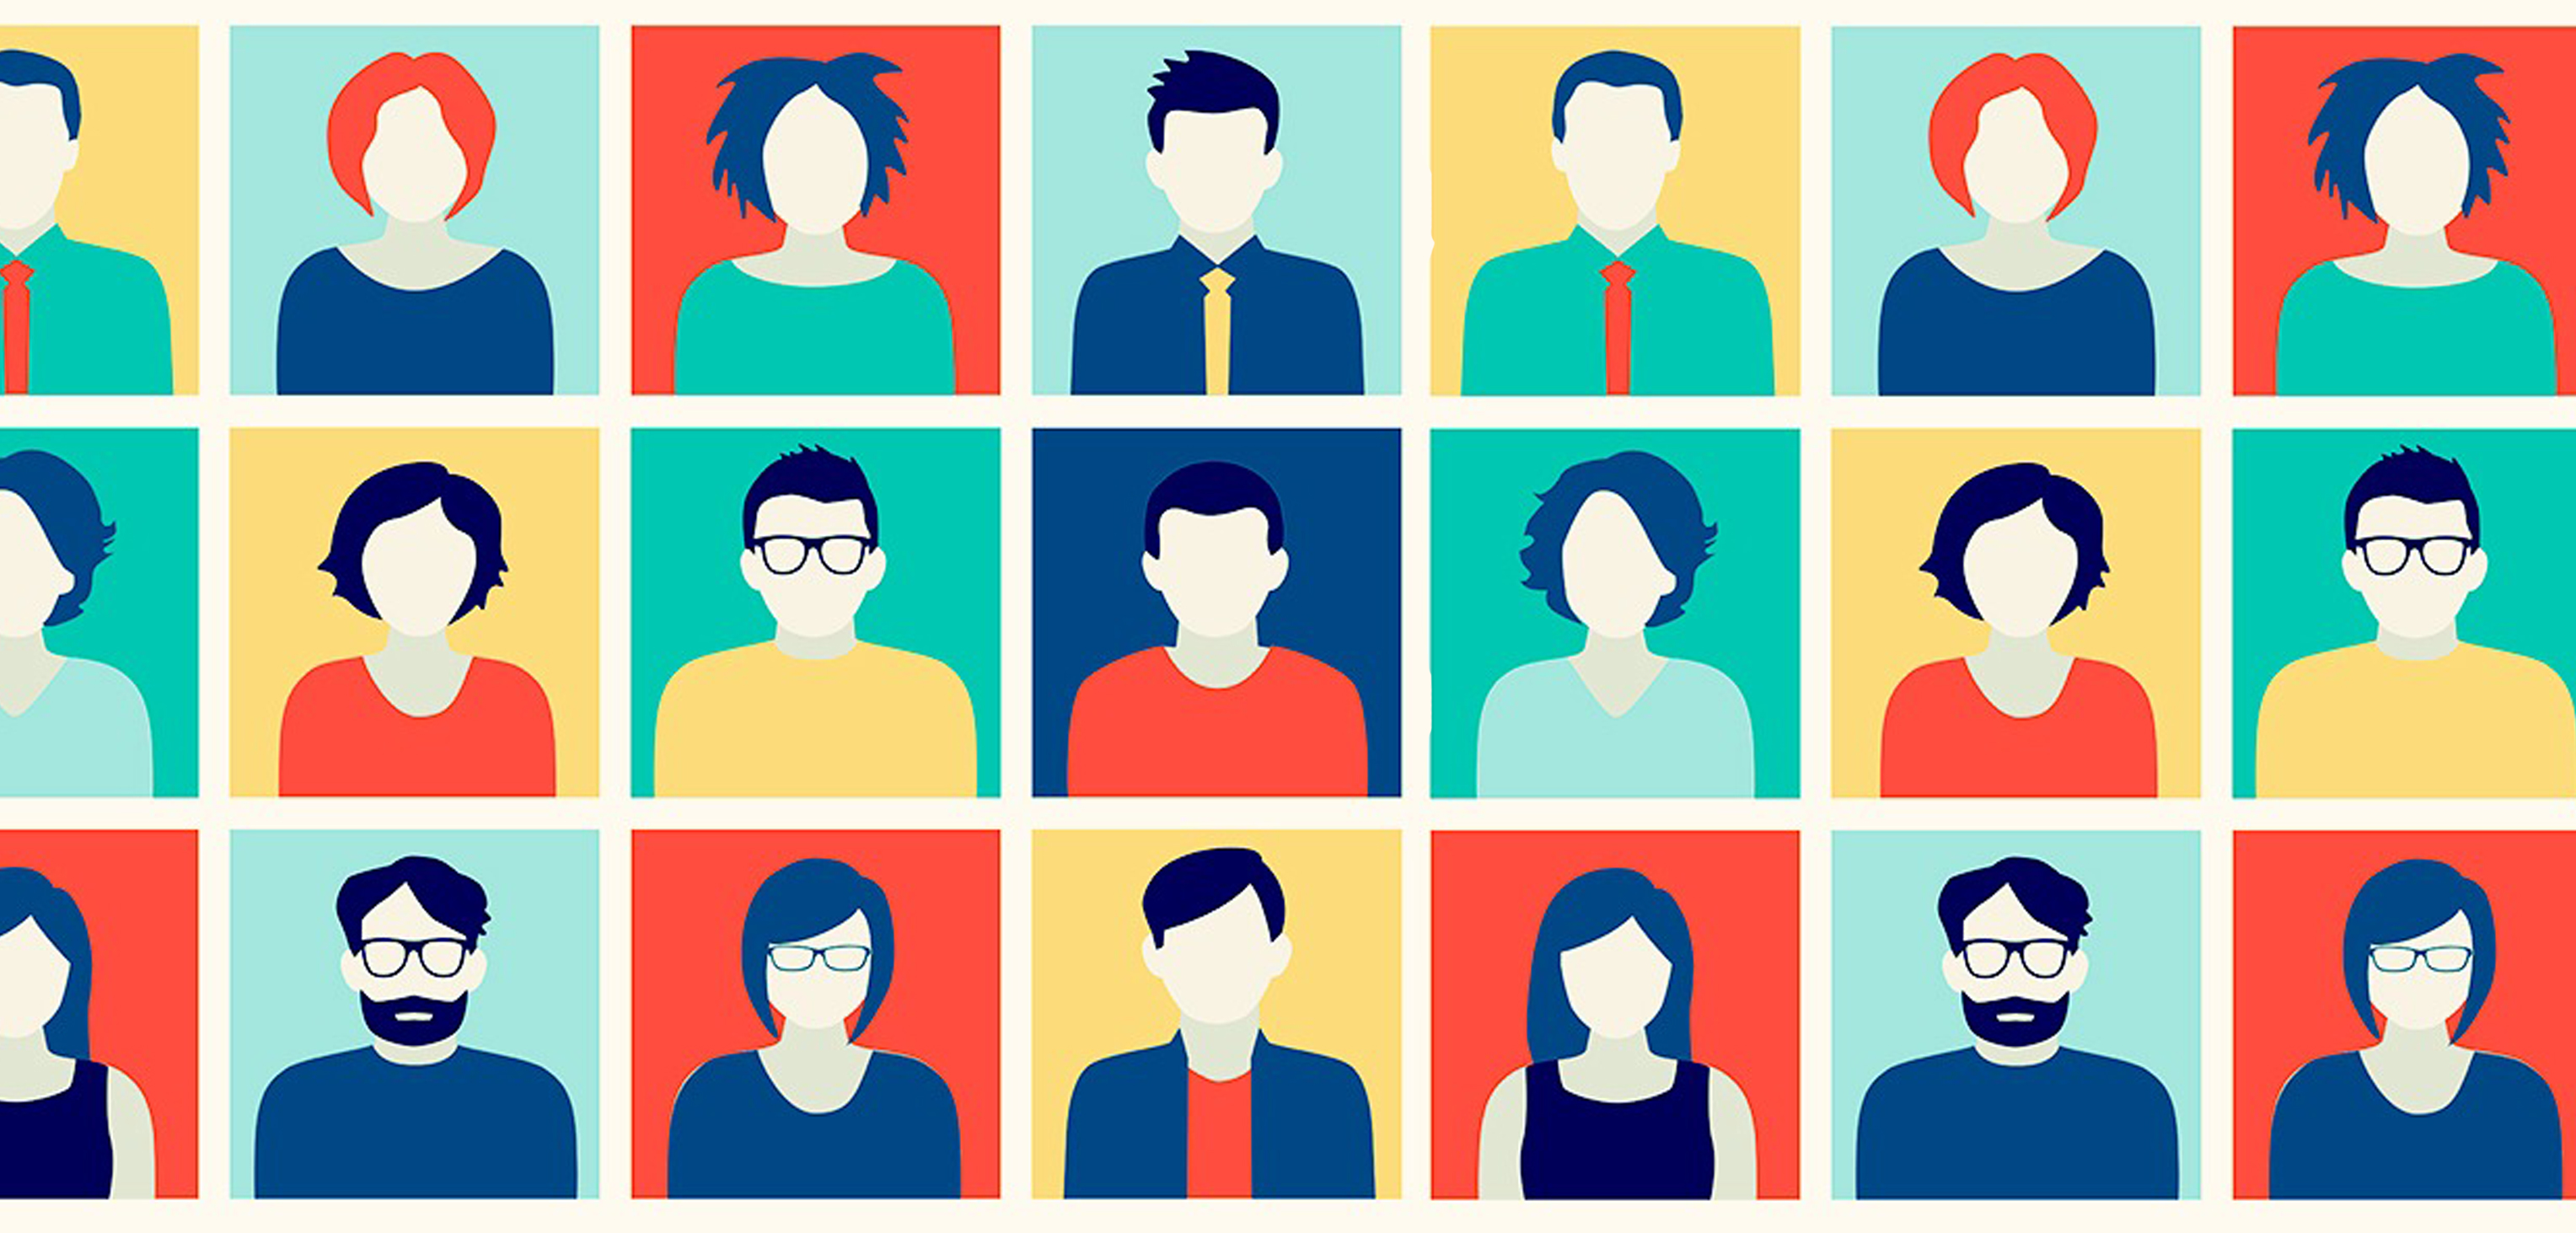 changing jobs archives career experts how social media photos affect your career